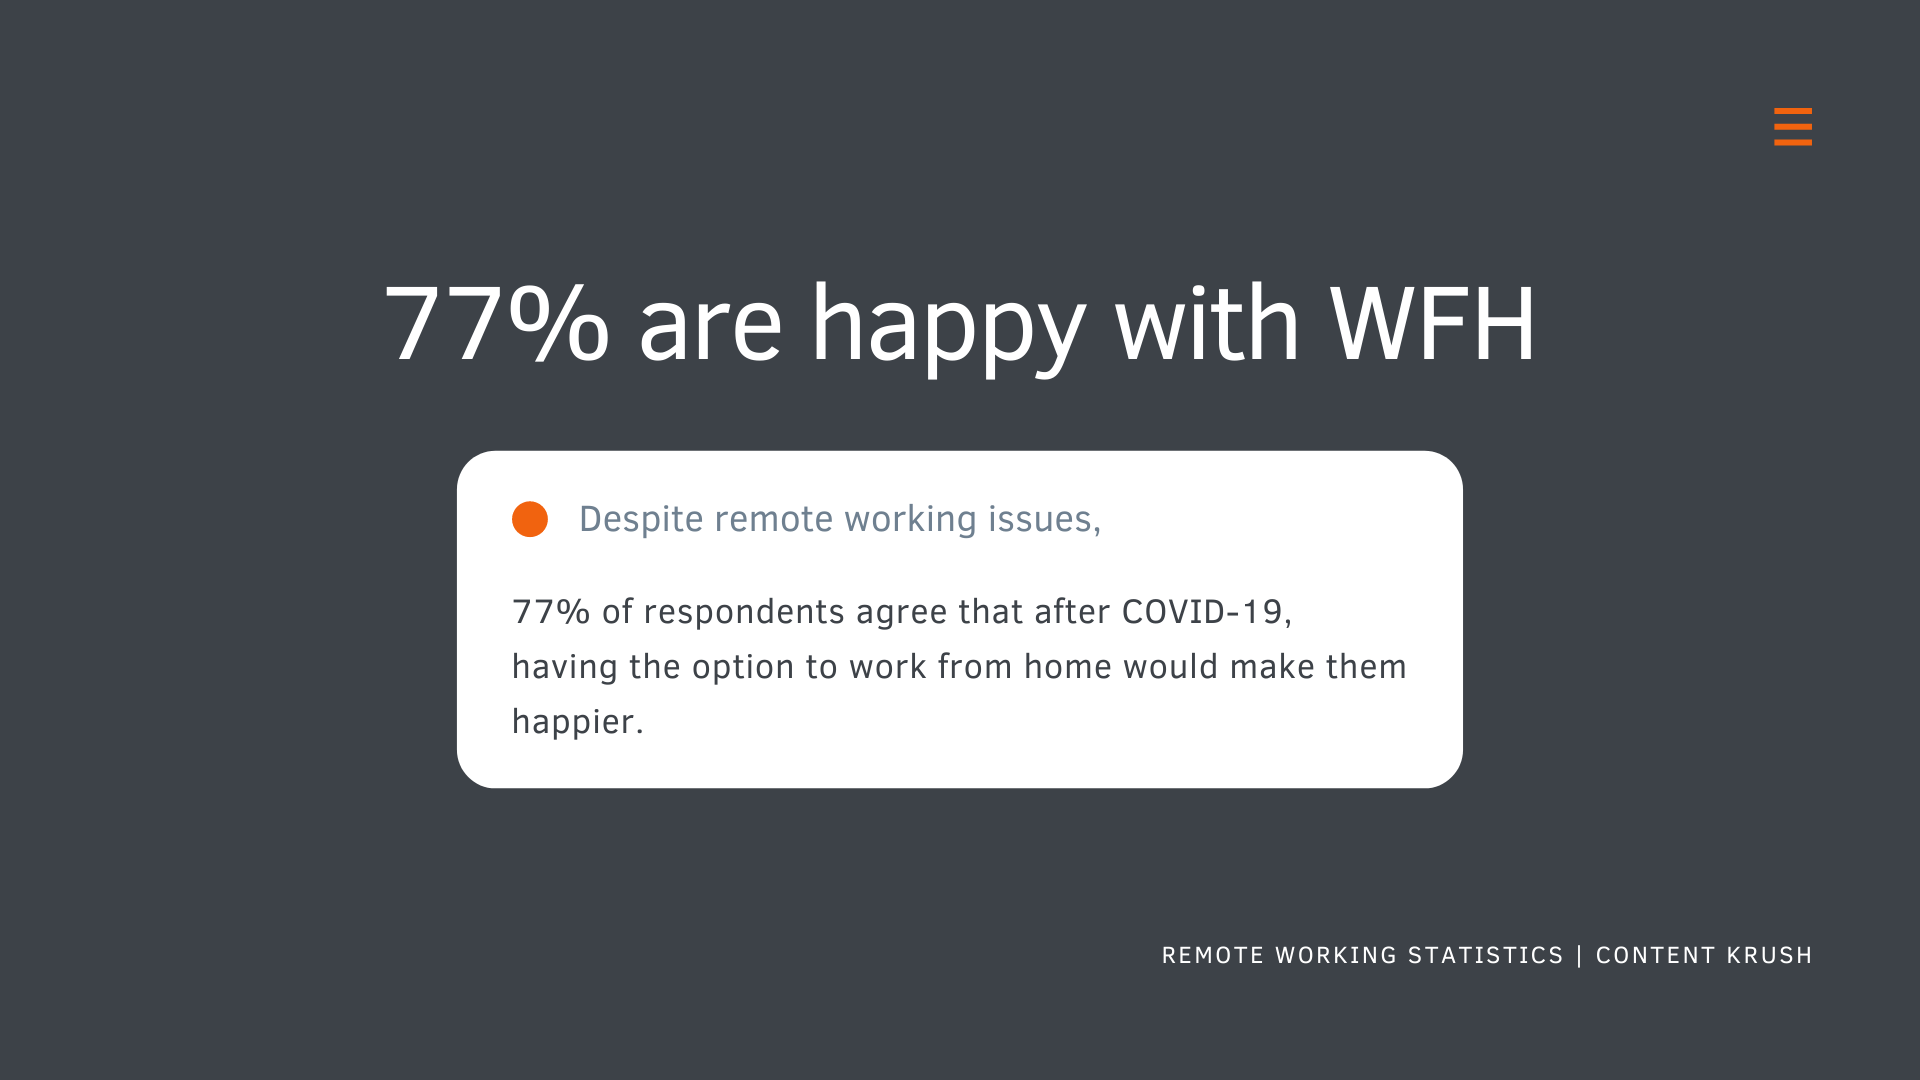 Remote Working Statistics - Why WFH Will Continue Post-COVID19